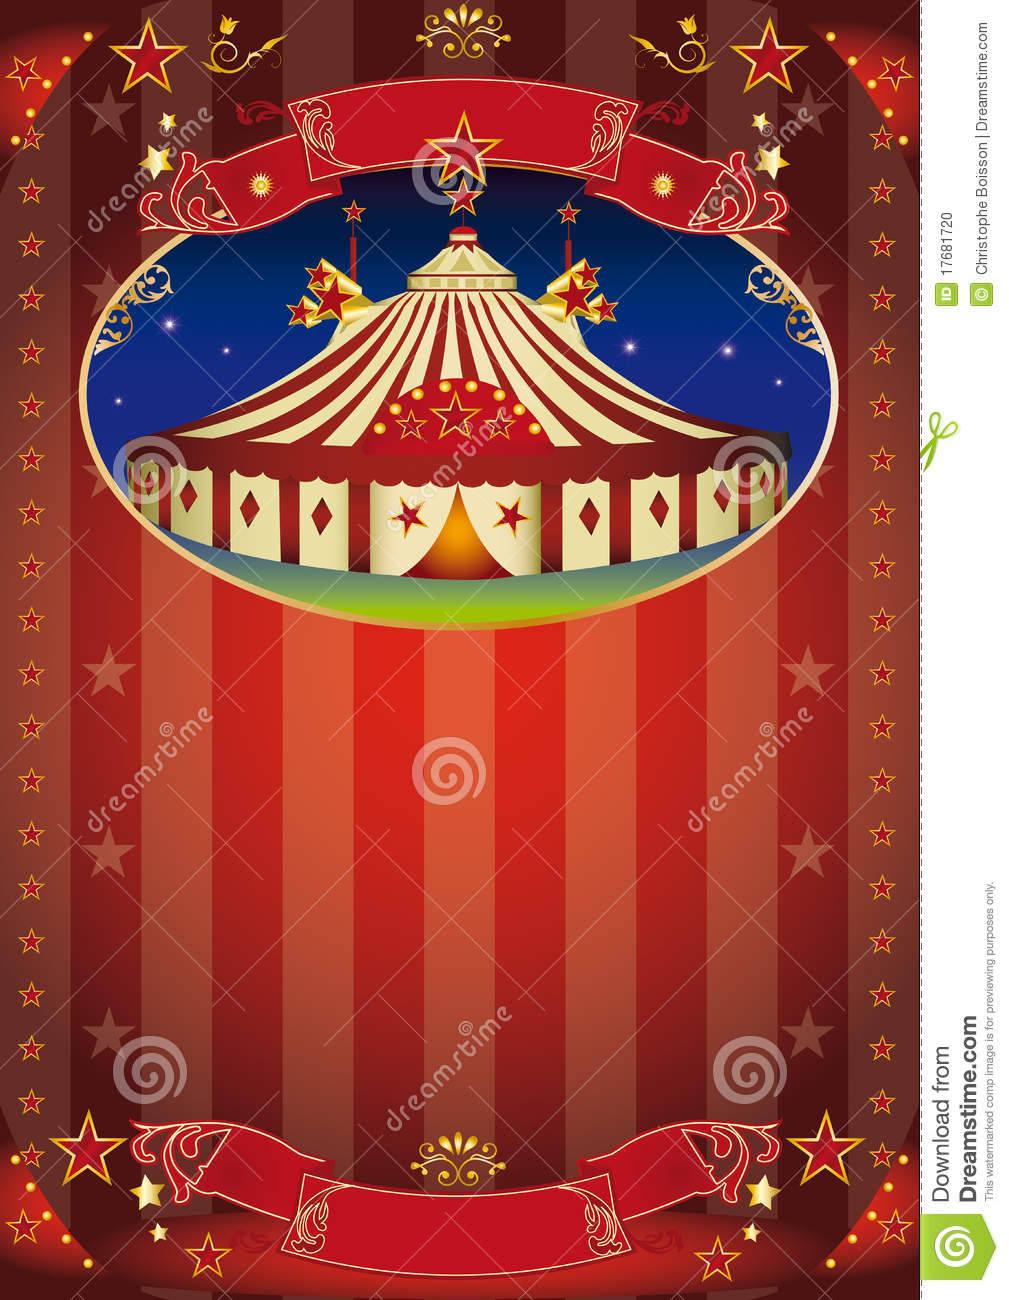 circus flyer background - photo #16